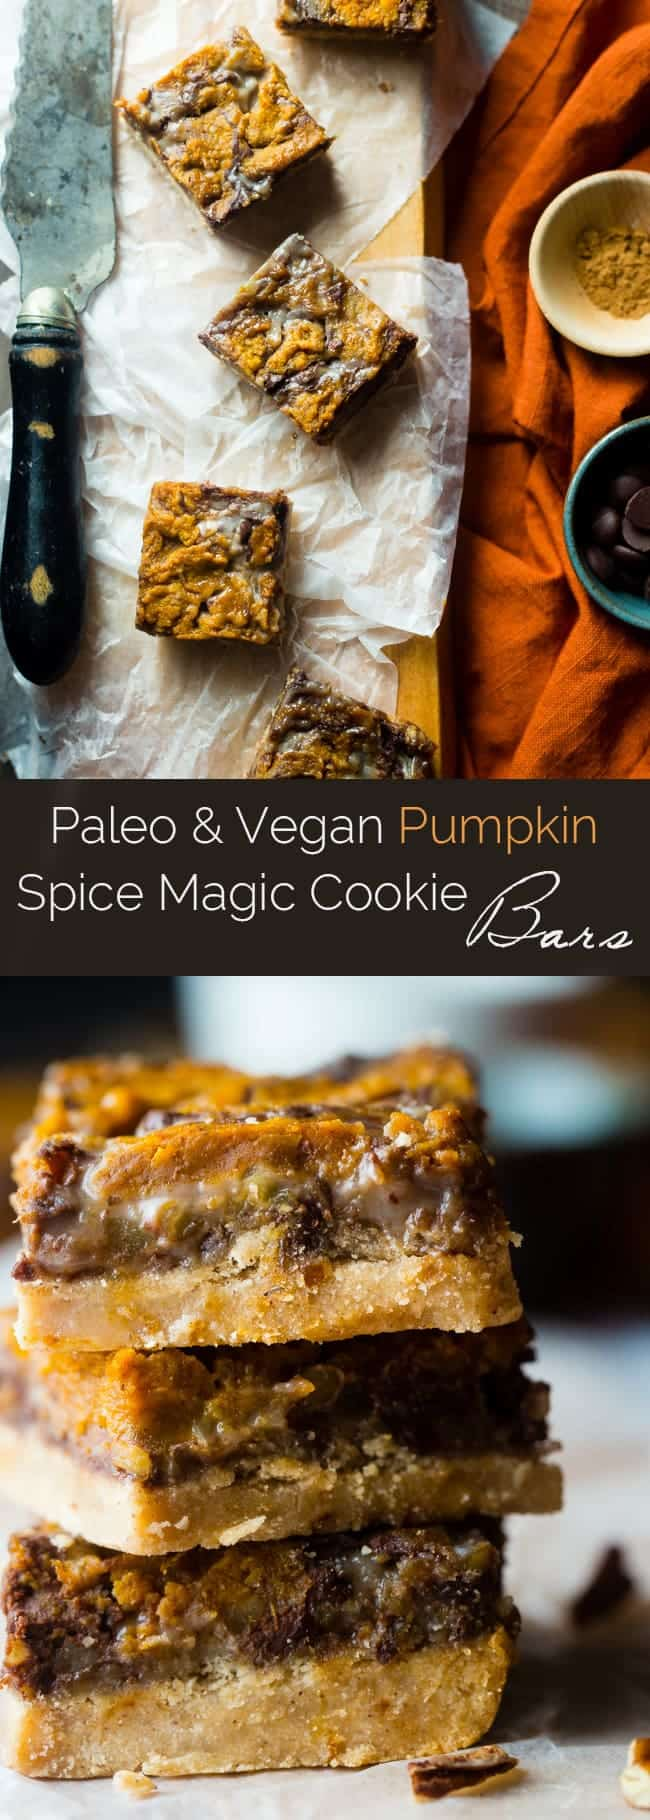 Vegan Pumpkin Spice Paleo Magic Cookie Bars - A healthier, dairy and gluten free version of the classic dessert that are packed with spicy-sweet fall flavors and are so easy to make! | Foodfaithfitness.com | @FoodFaithFit